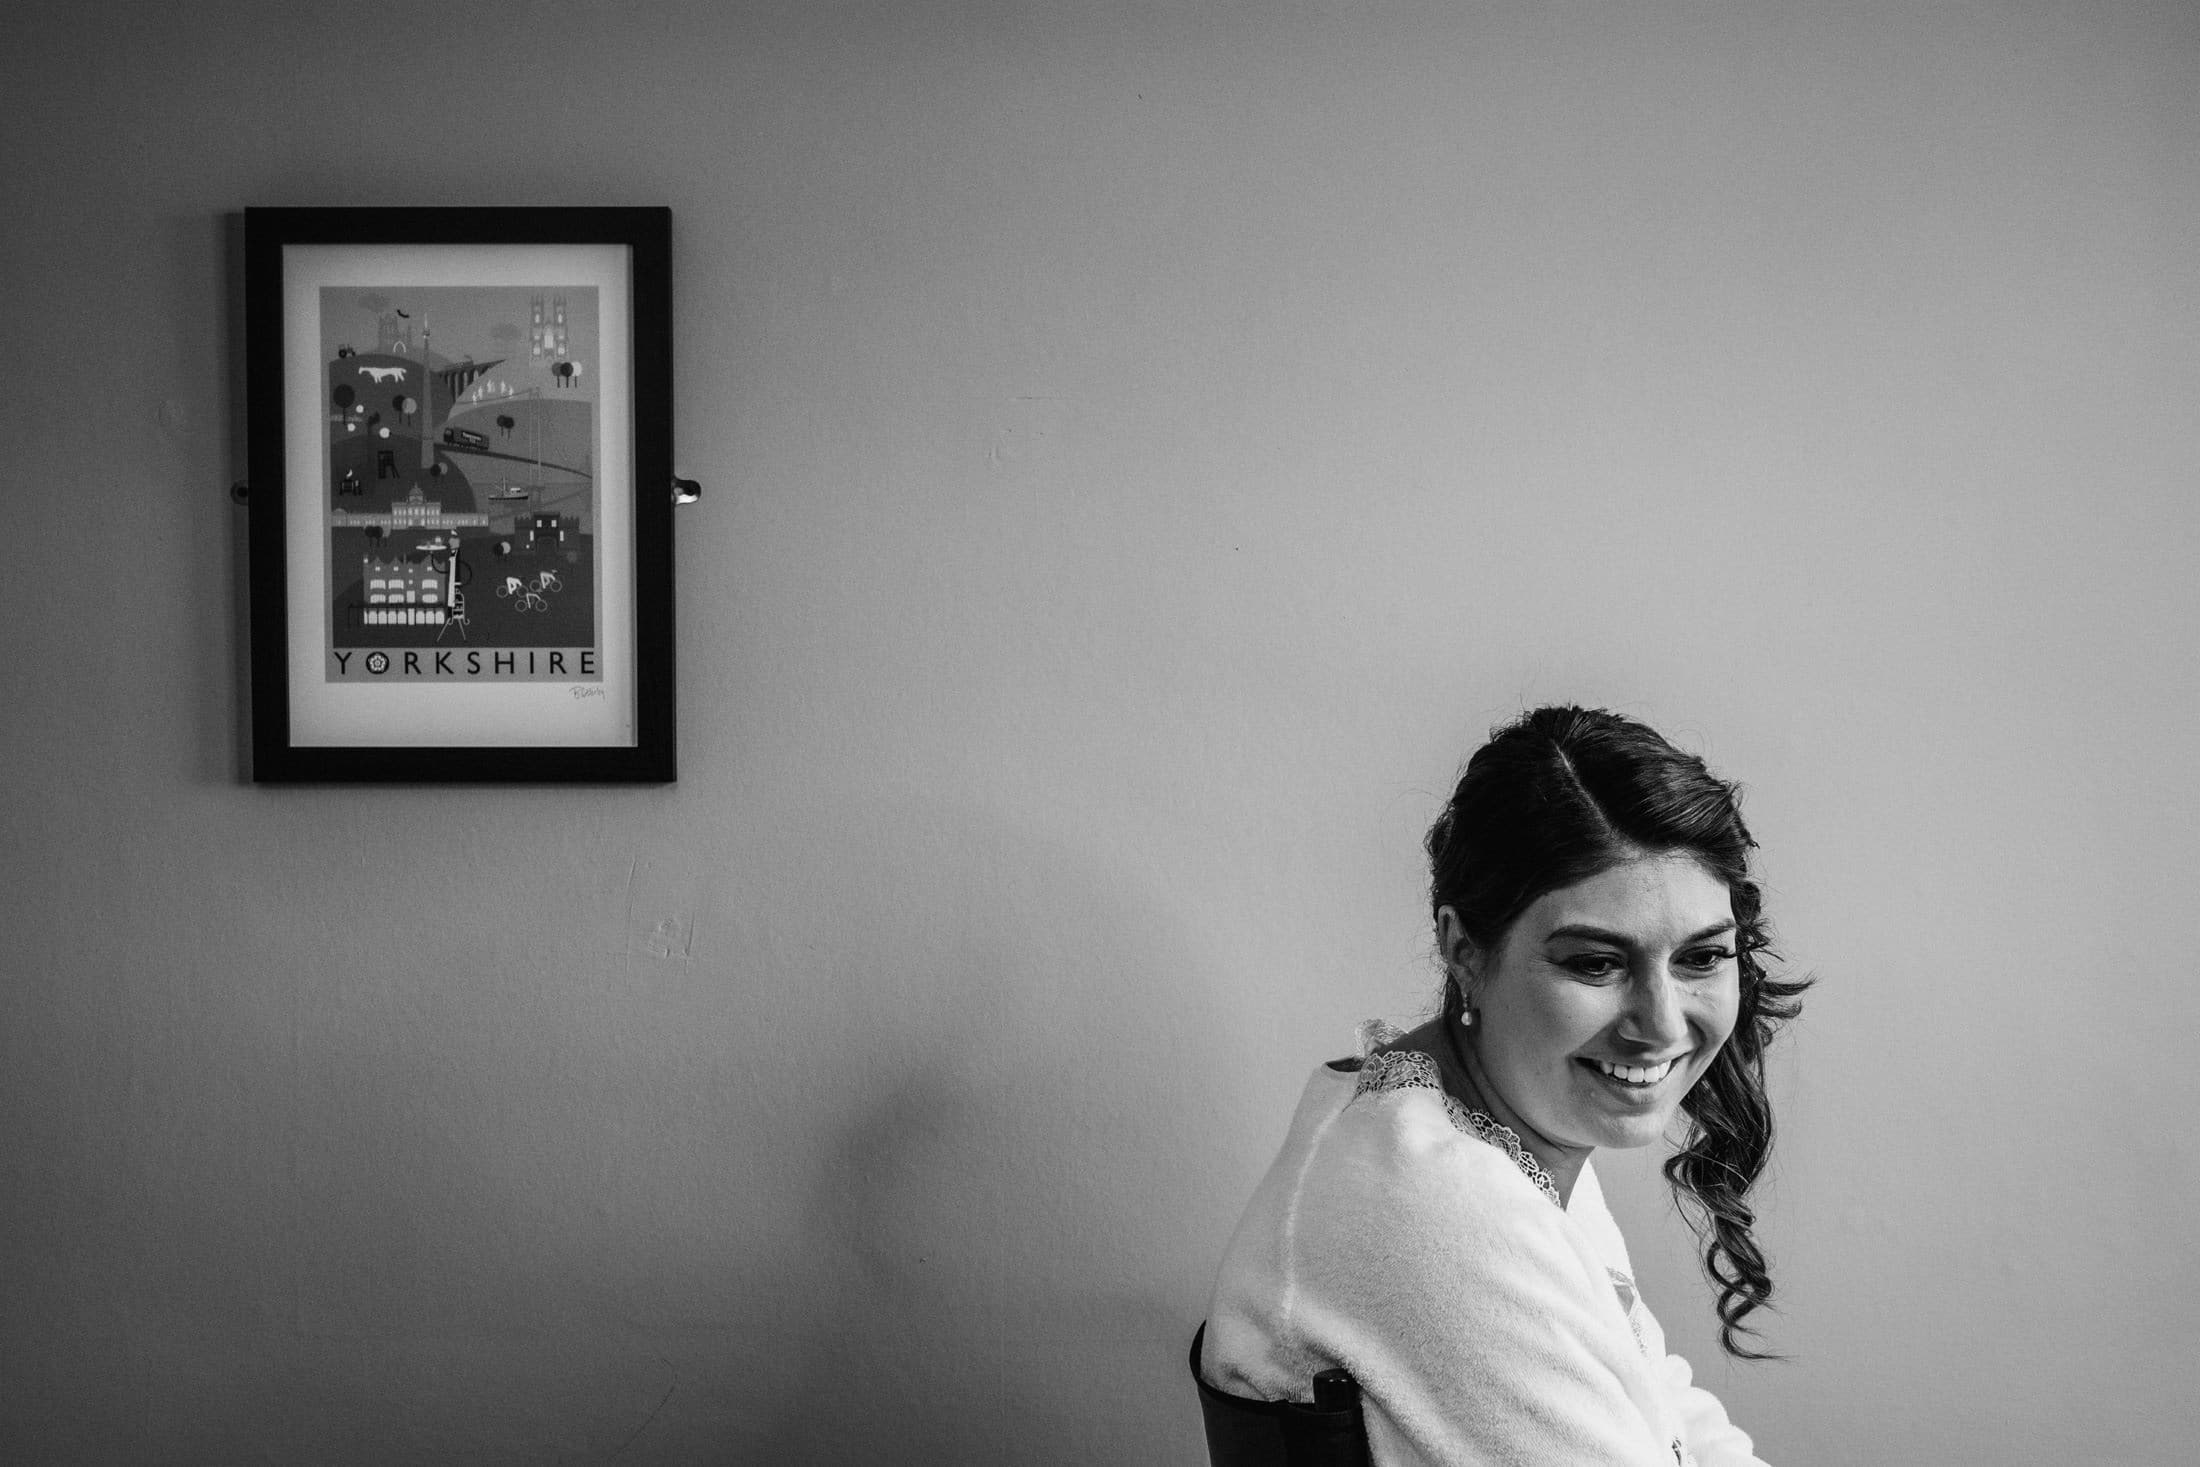 bridal preparations with Yorkshire frame in background